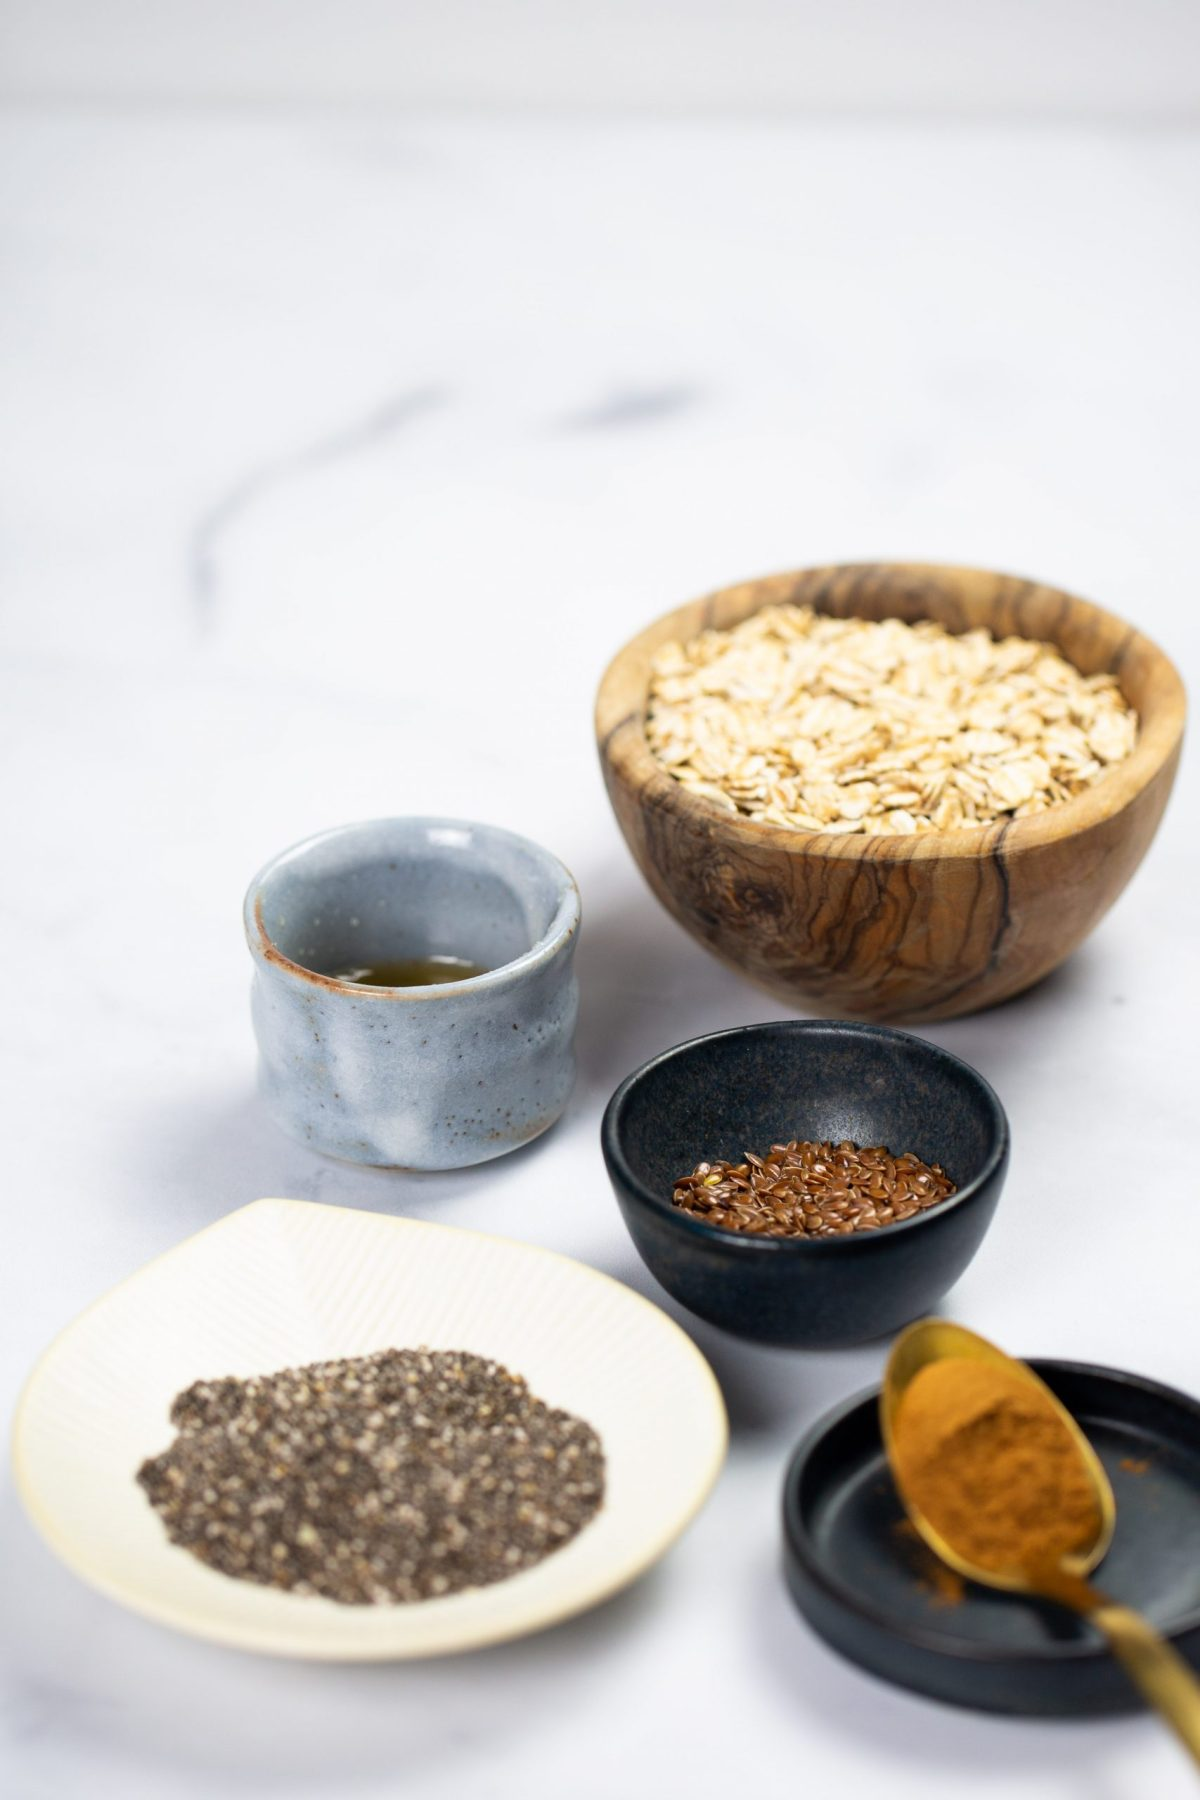 Oats, flaxseds, chia seed and other ingredients to prepare overnight oats.